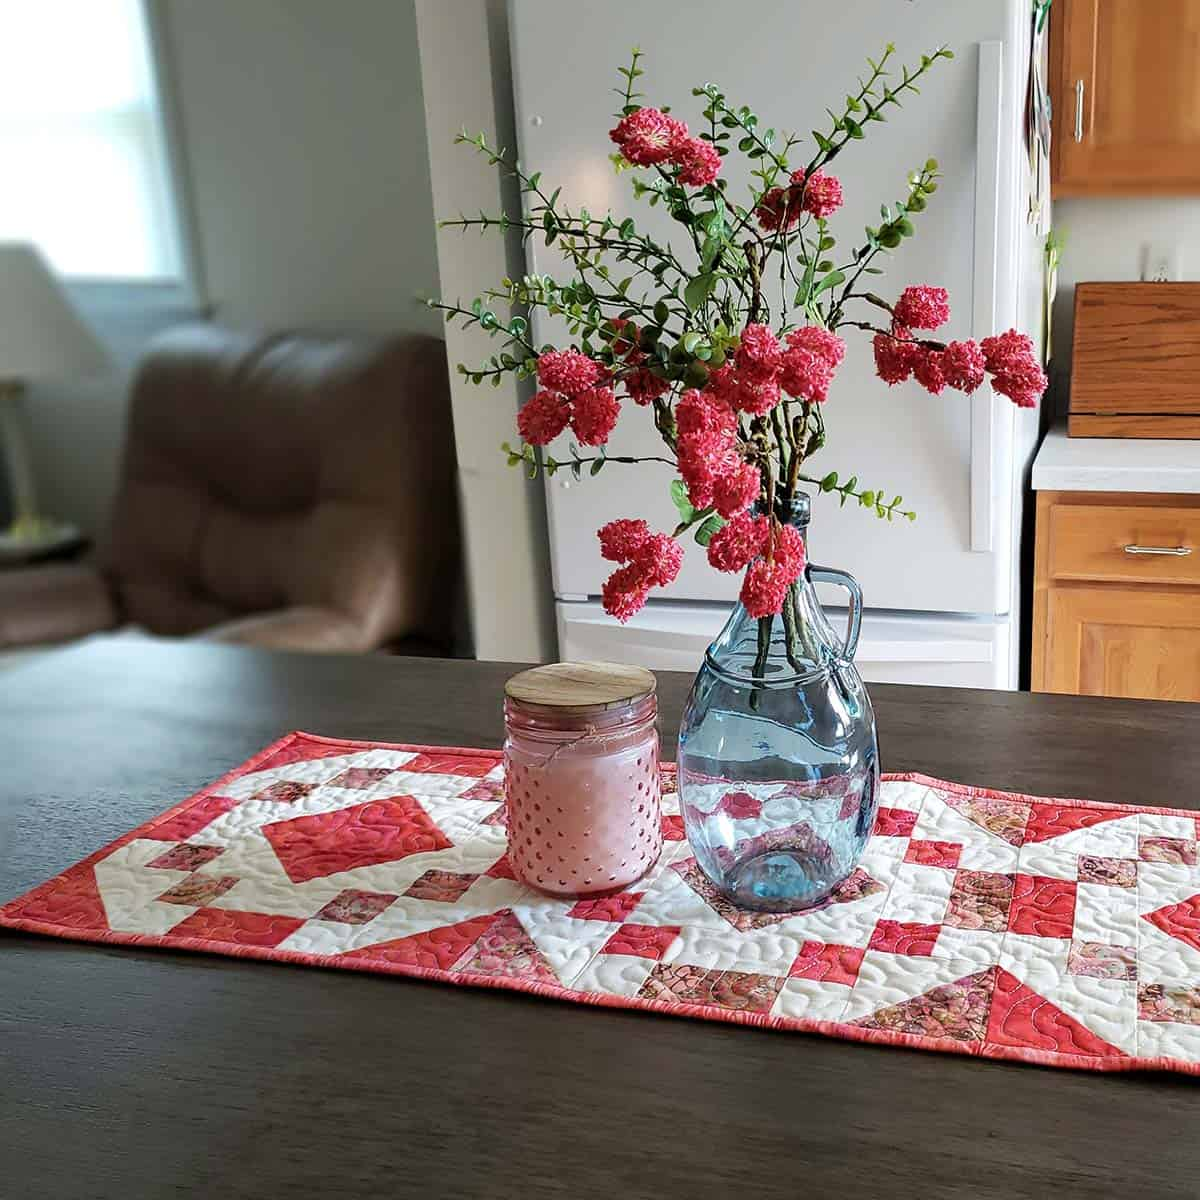 Coral Jewel Table runner on kitchen table easy tutorial